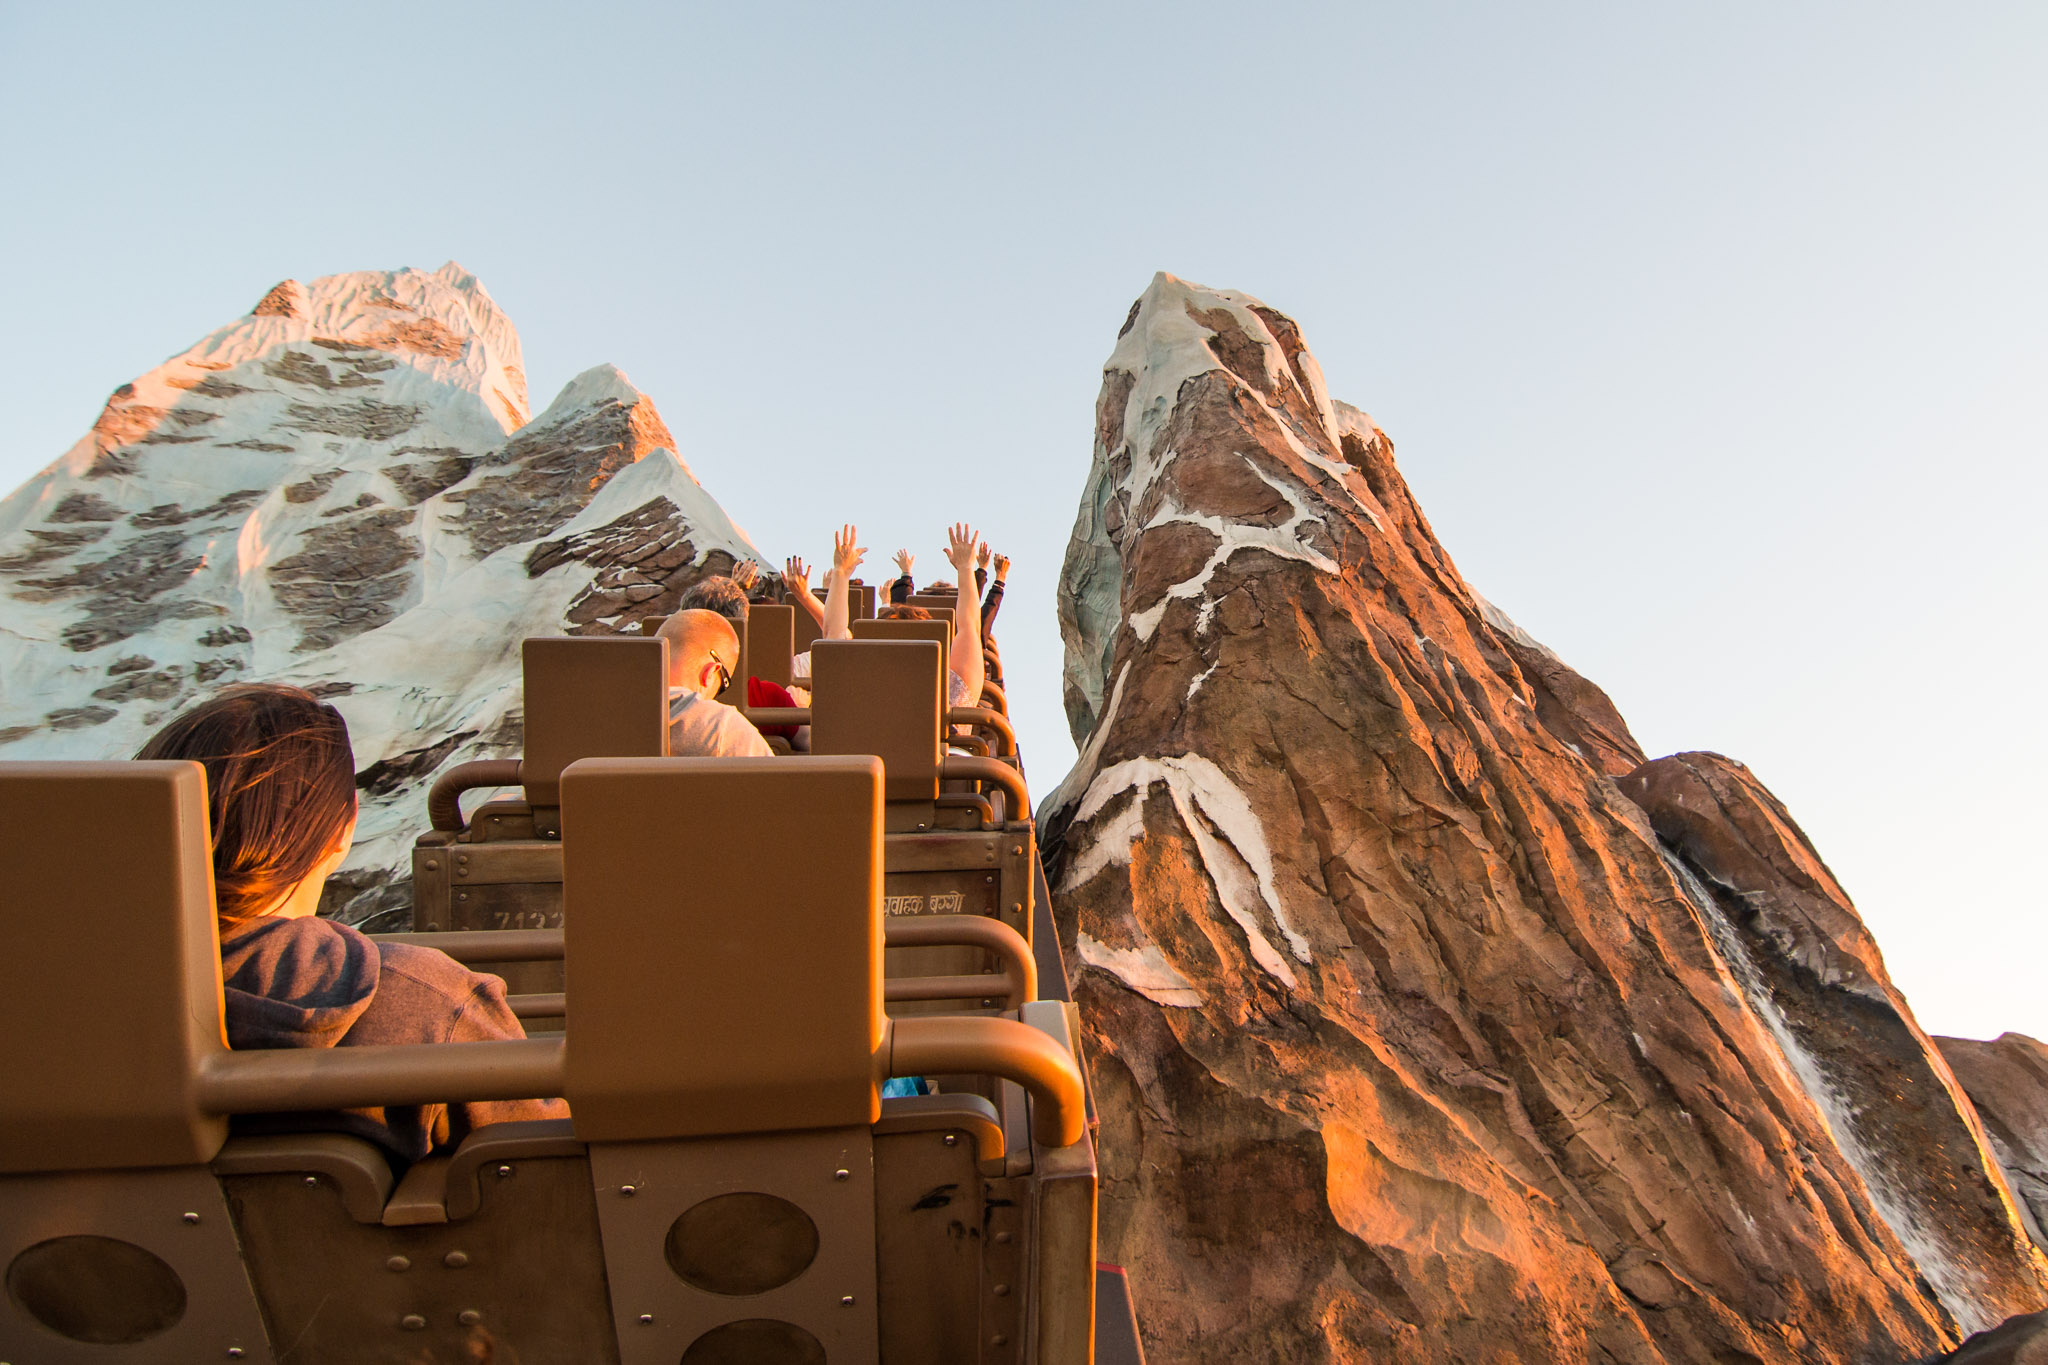 Expedition Everest - Nearing Summit